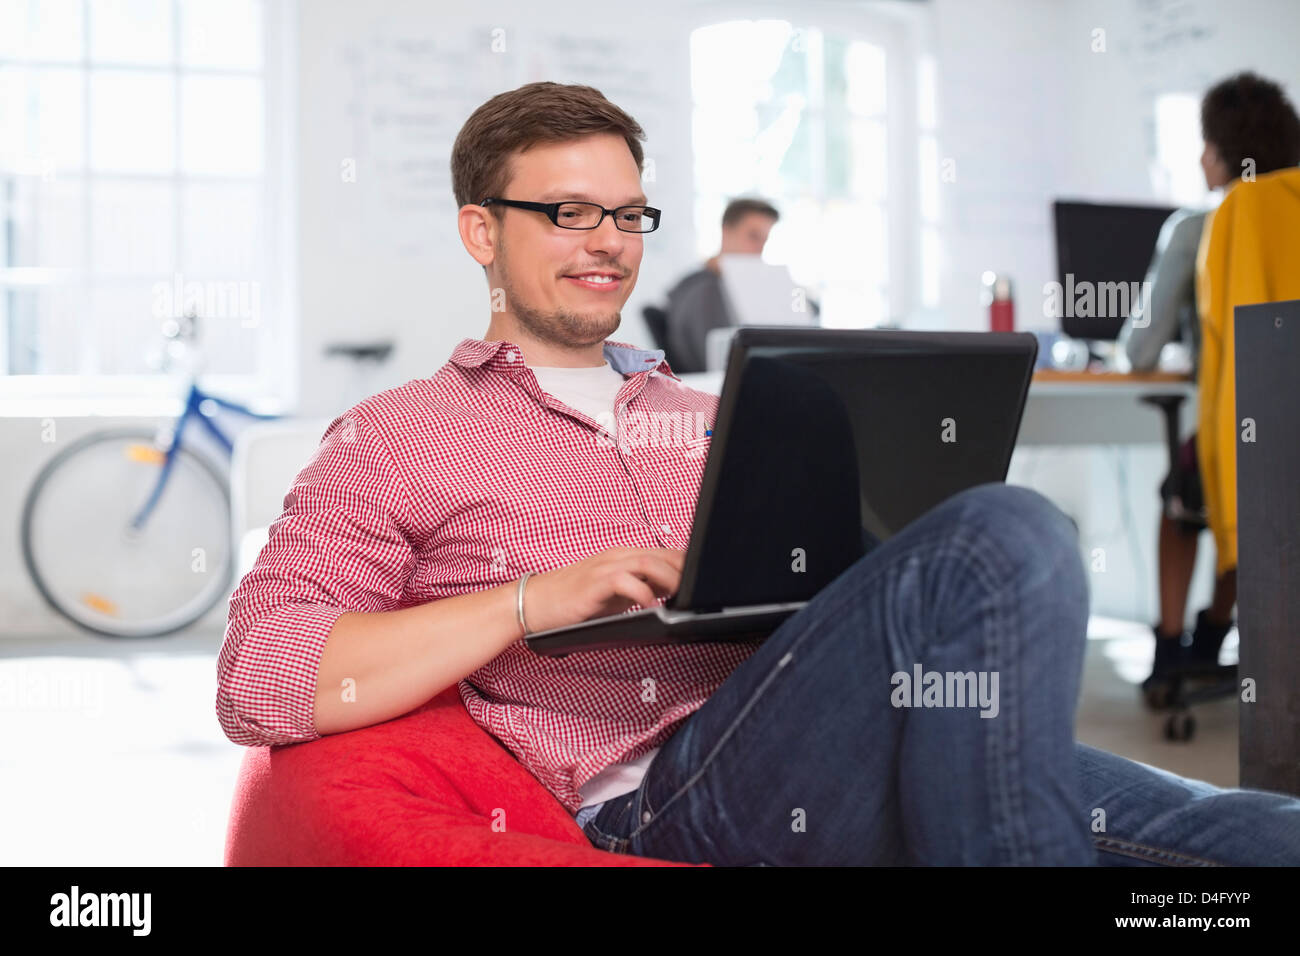 Businessman using laptop in bean bag chair in office - Stock Image